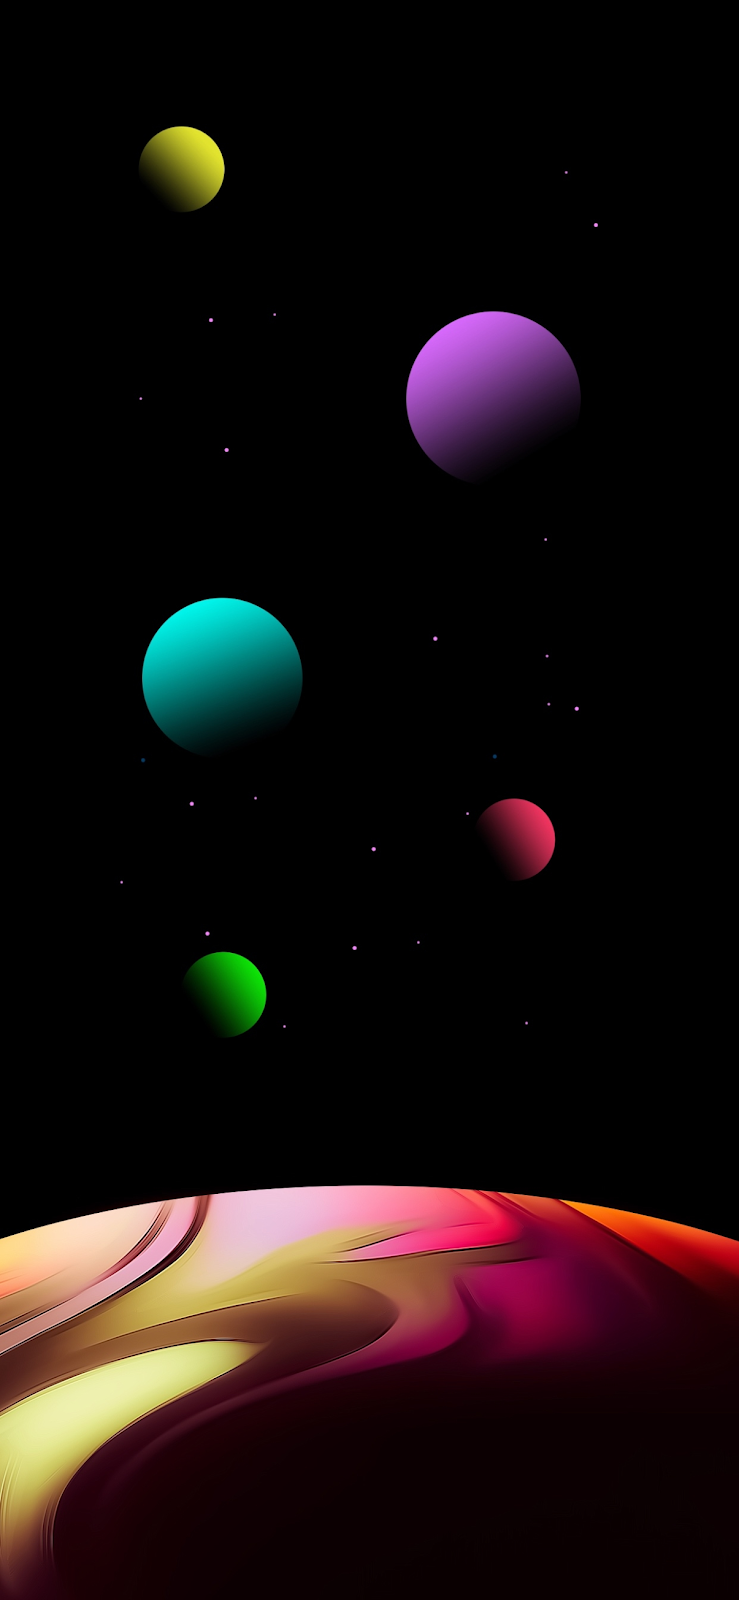 Planets 2 by AR72014